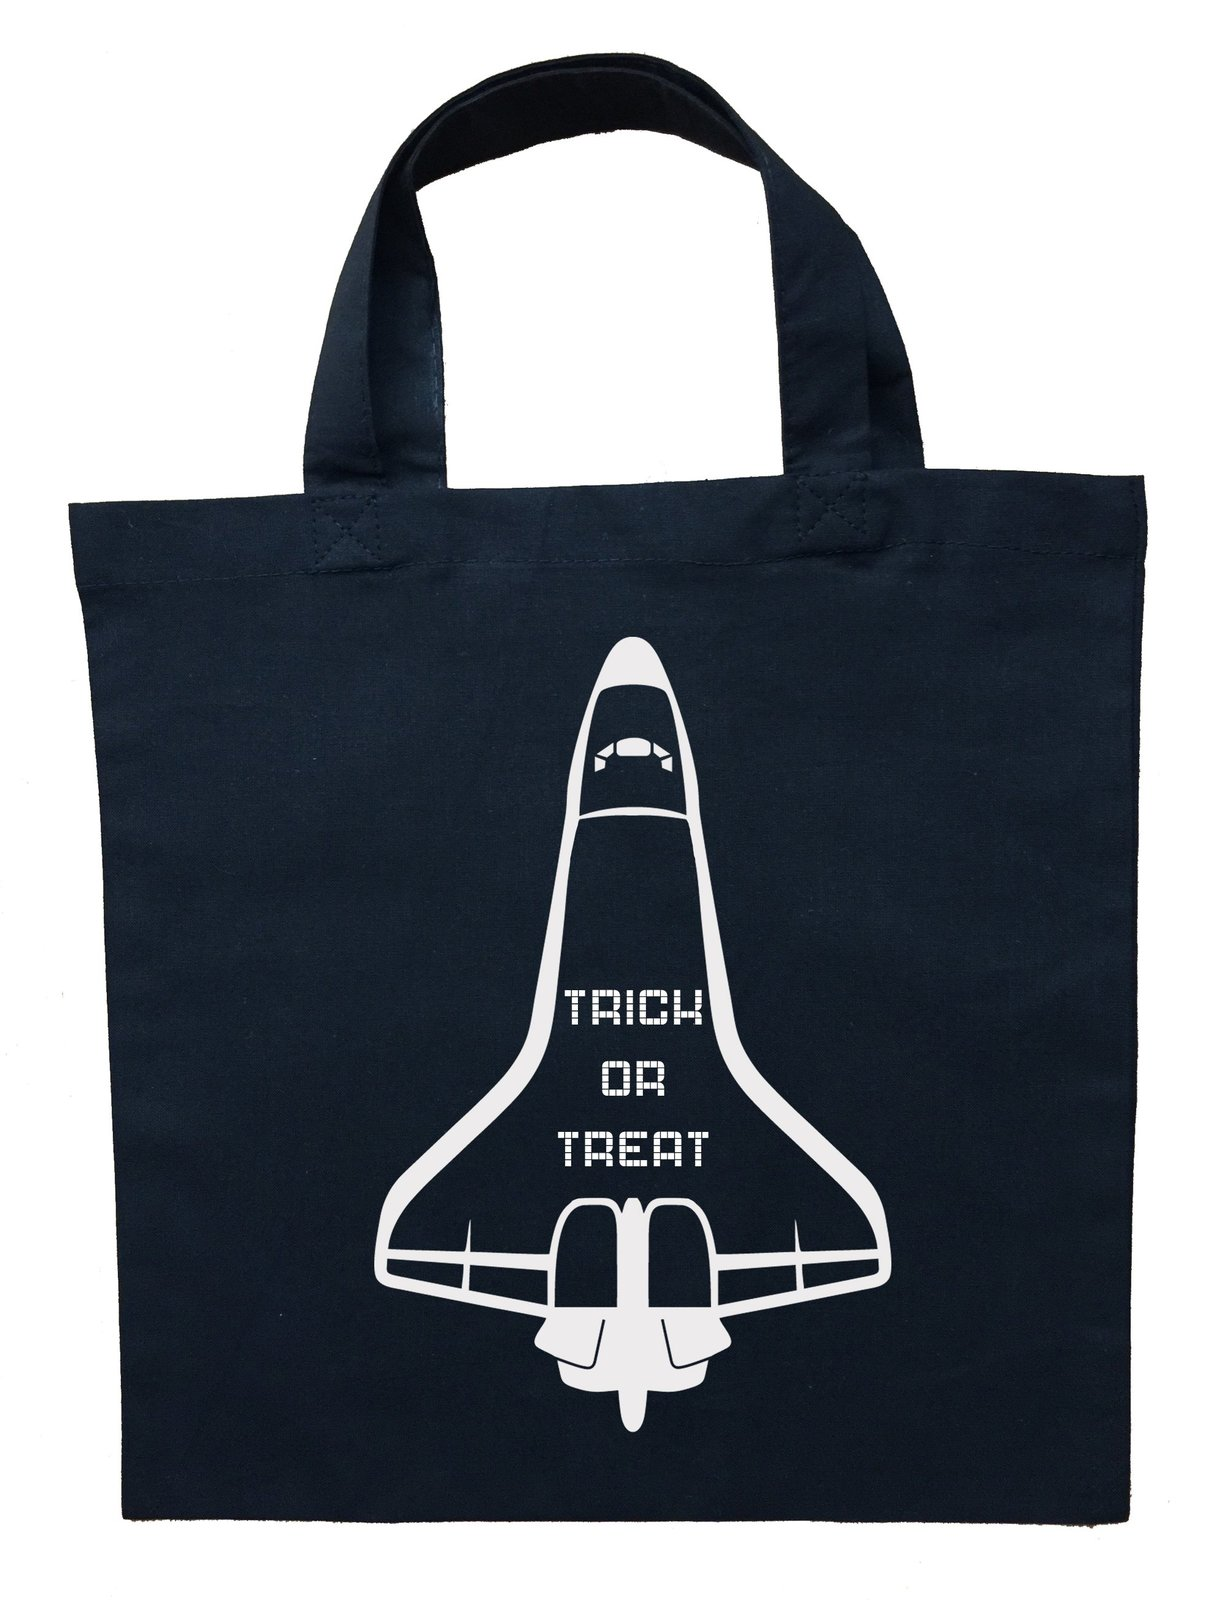 Astronaut Trick or Treat Bag - Personalized Astronaut Halloween Bag